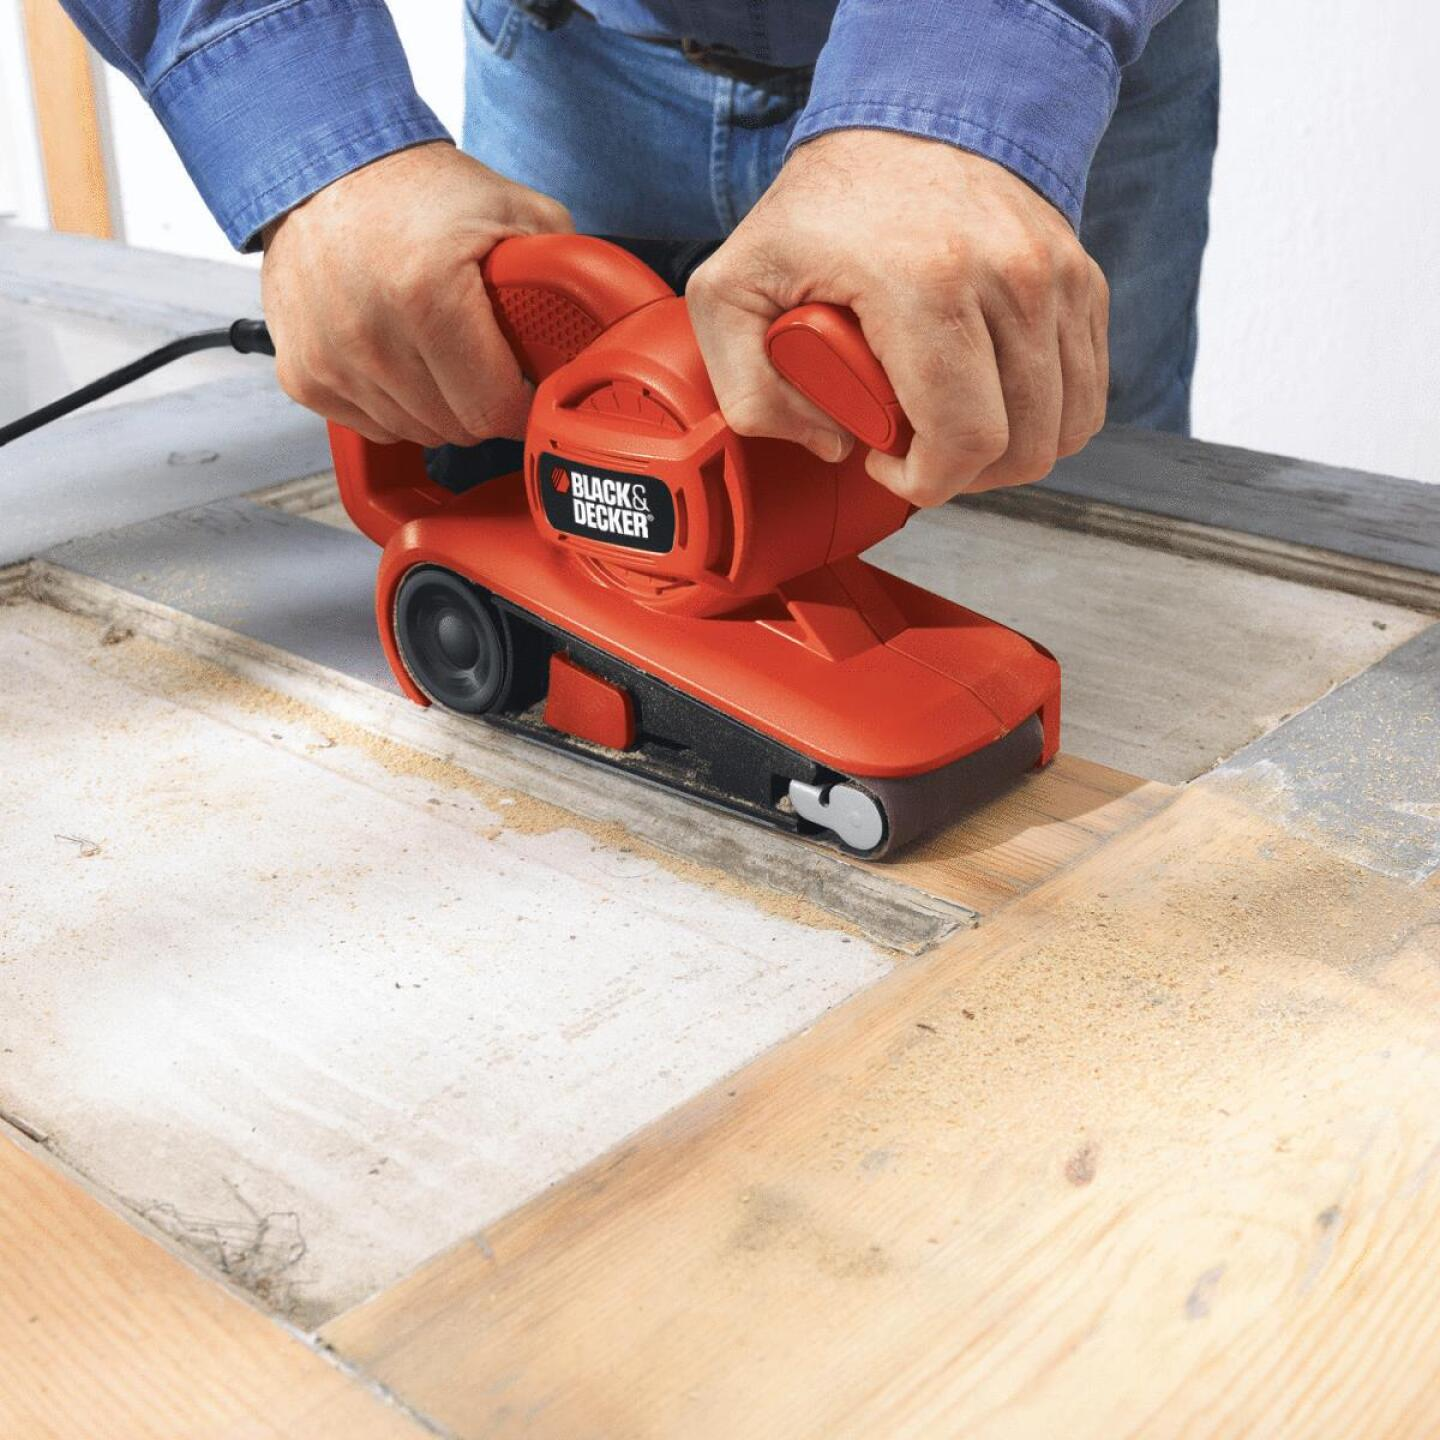 Black & Decker 3 In. x 18 In. Compact Belt Sander Image 2